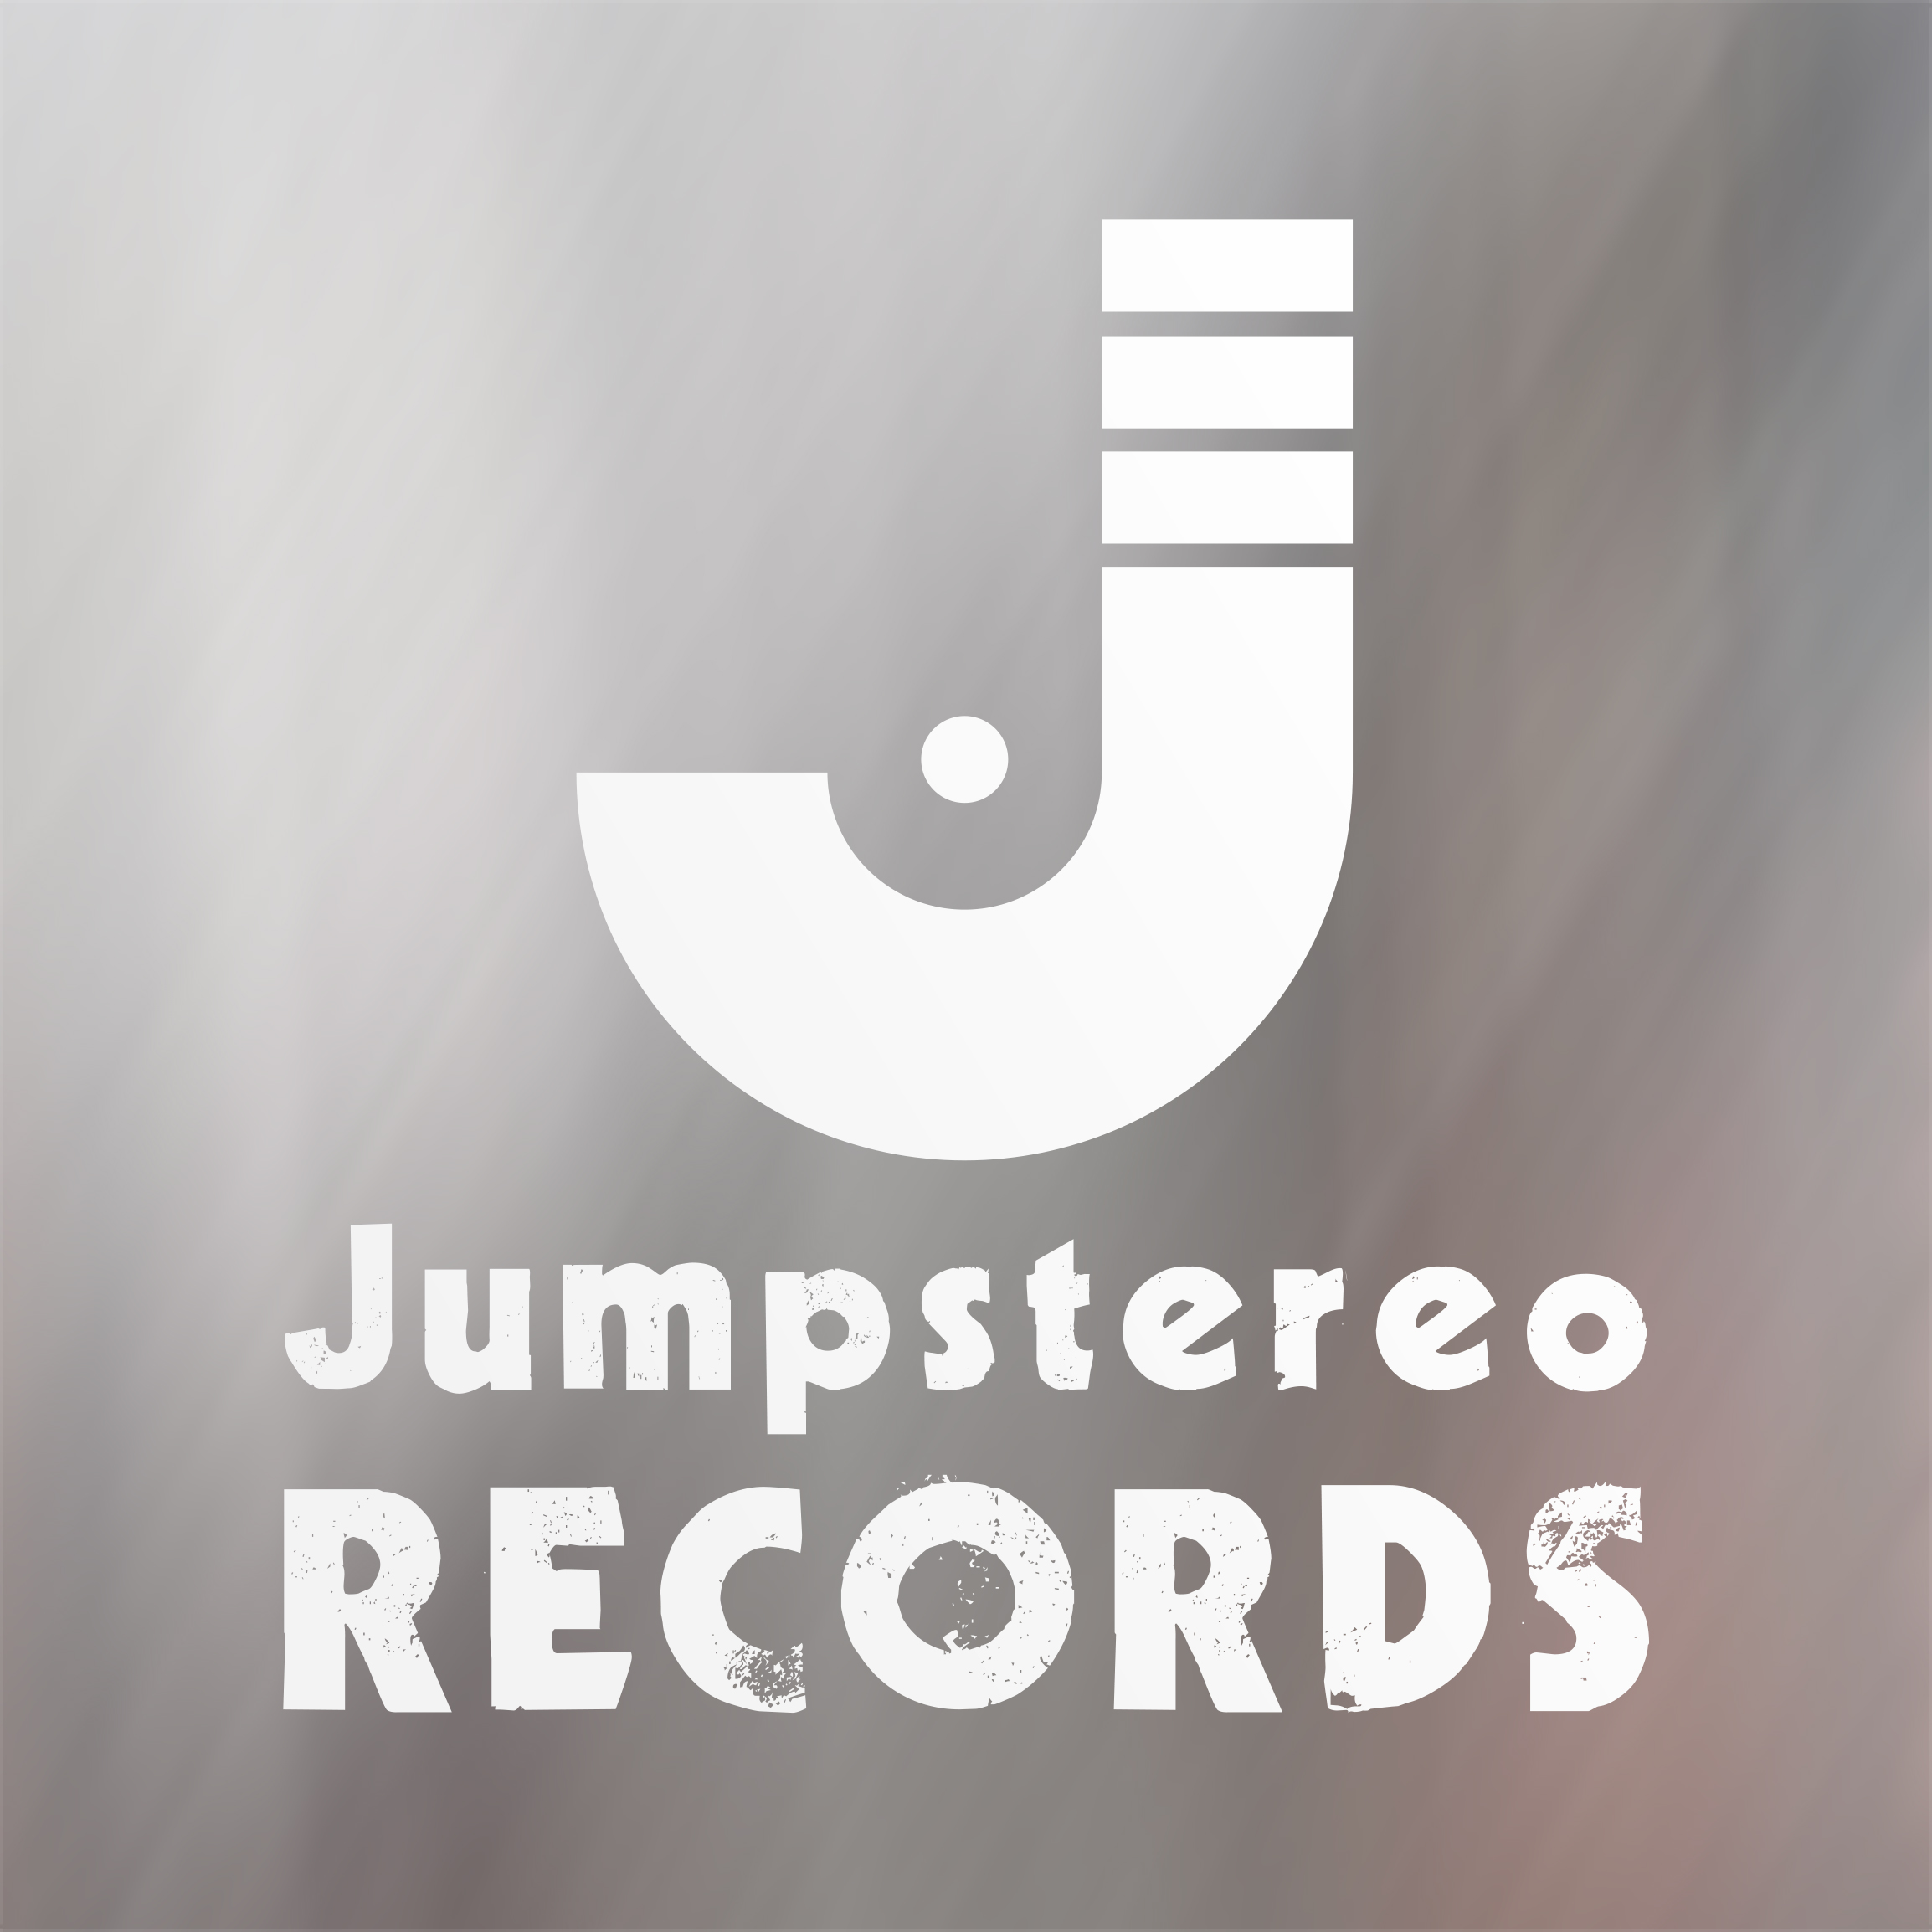 Jumpstereo/Jumpmono Records